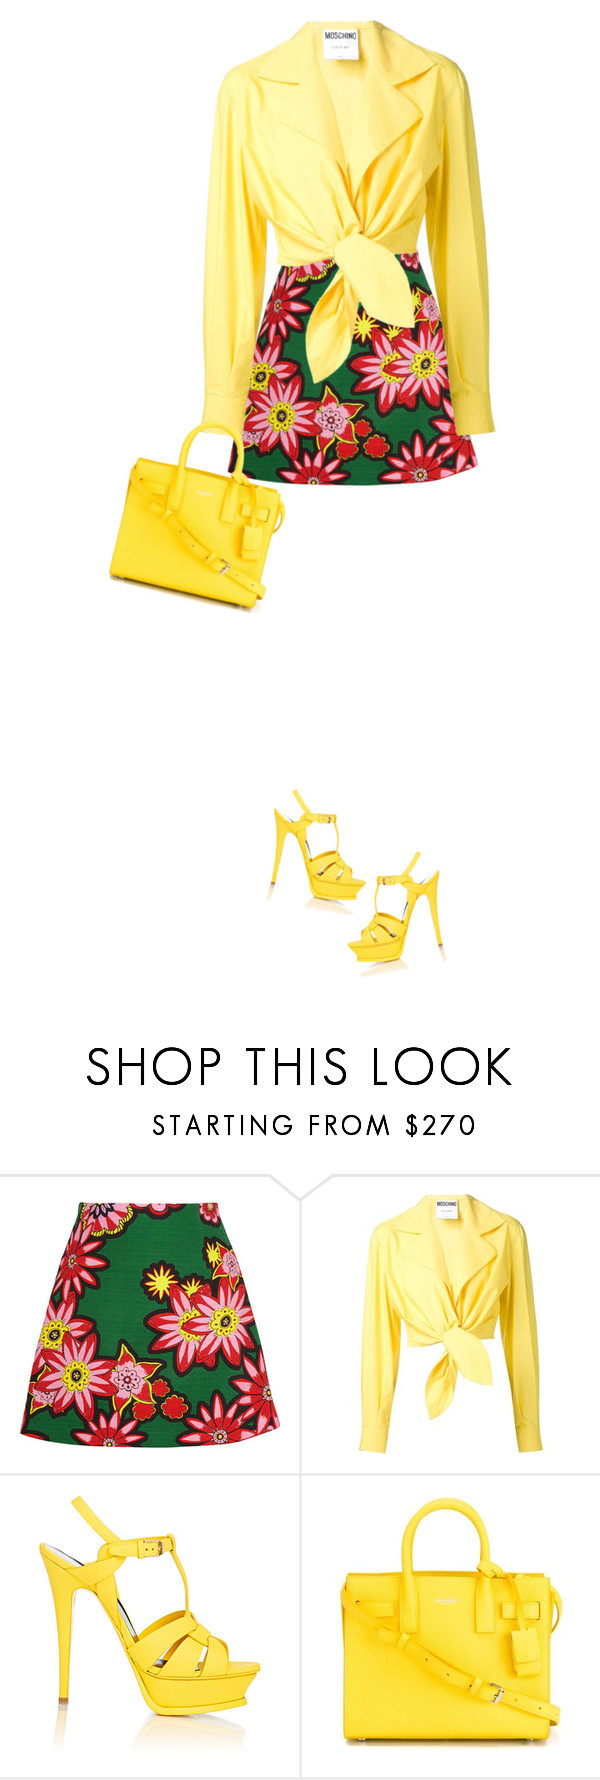 """it's a yellow bag!!!"" by bodangela ❤ liked on Polyvore featuring House of Holland, Moschino and Yves Saint Laurent"